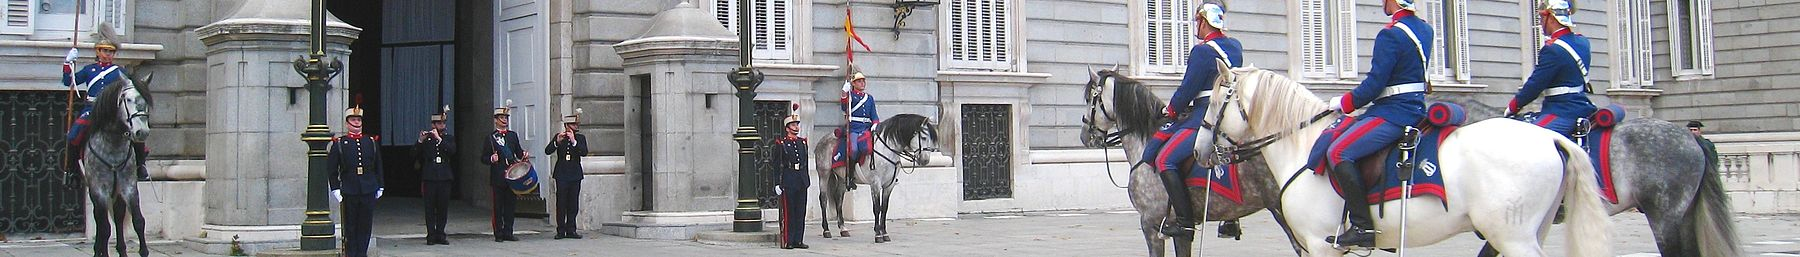 WV banner Madrid Royal guards.jpg